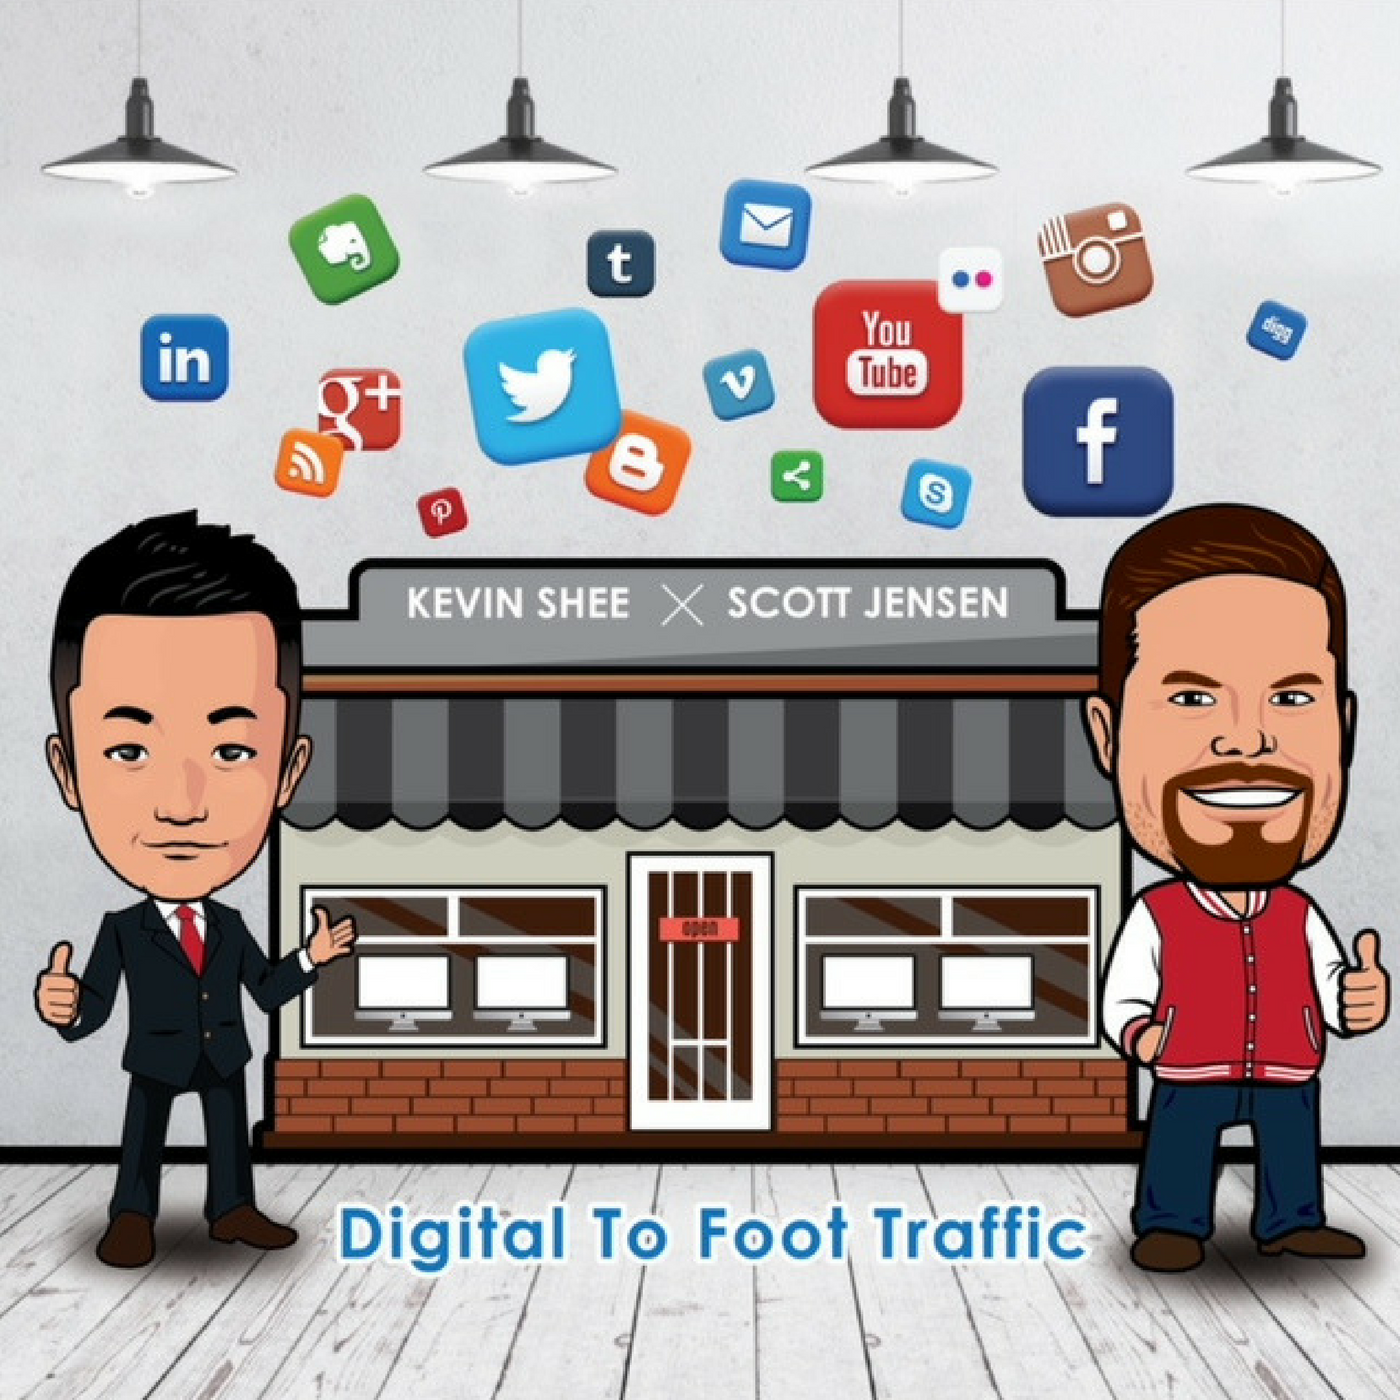 Digital to Foot Traffic - Online Marketing Guide for Retail Stores show art